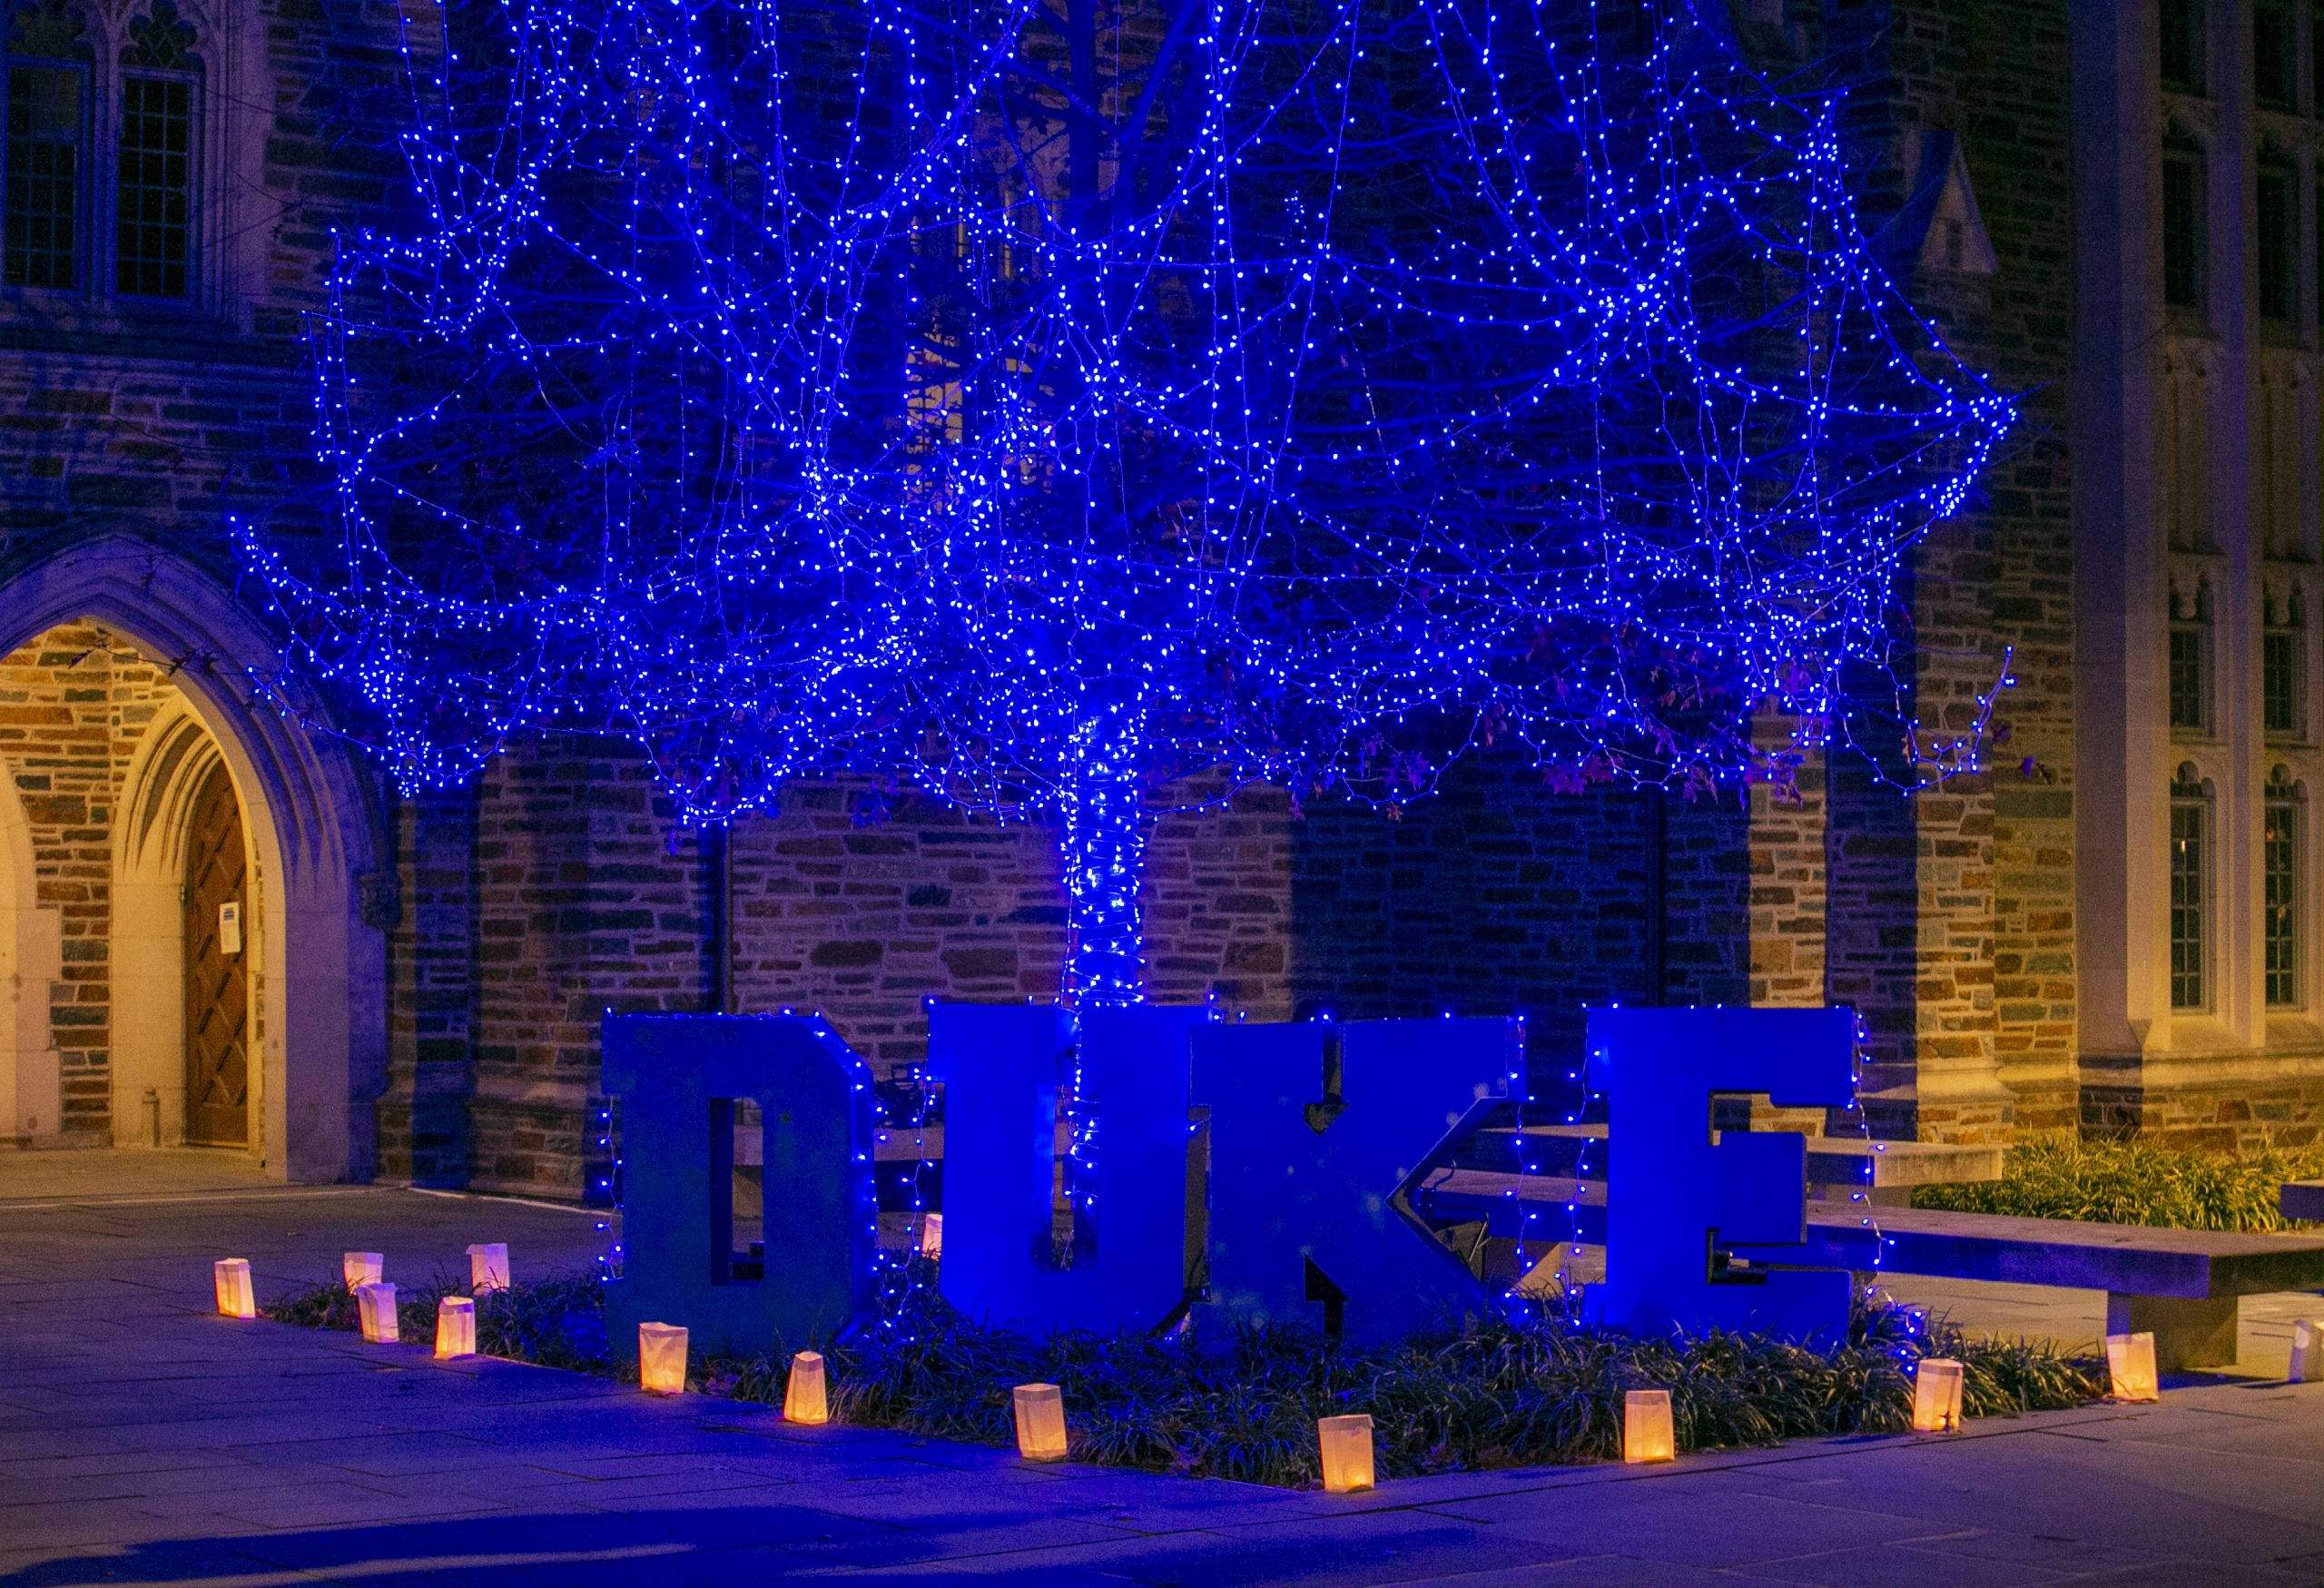 The University Communications team wrapped cardboard letters in blue string lights and placed them at the bottom of a decorated tree for a holiday video.